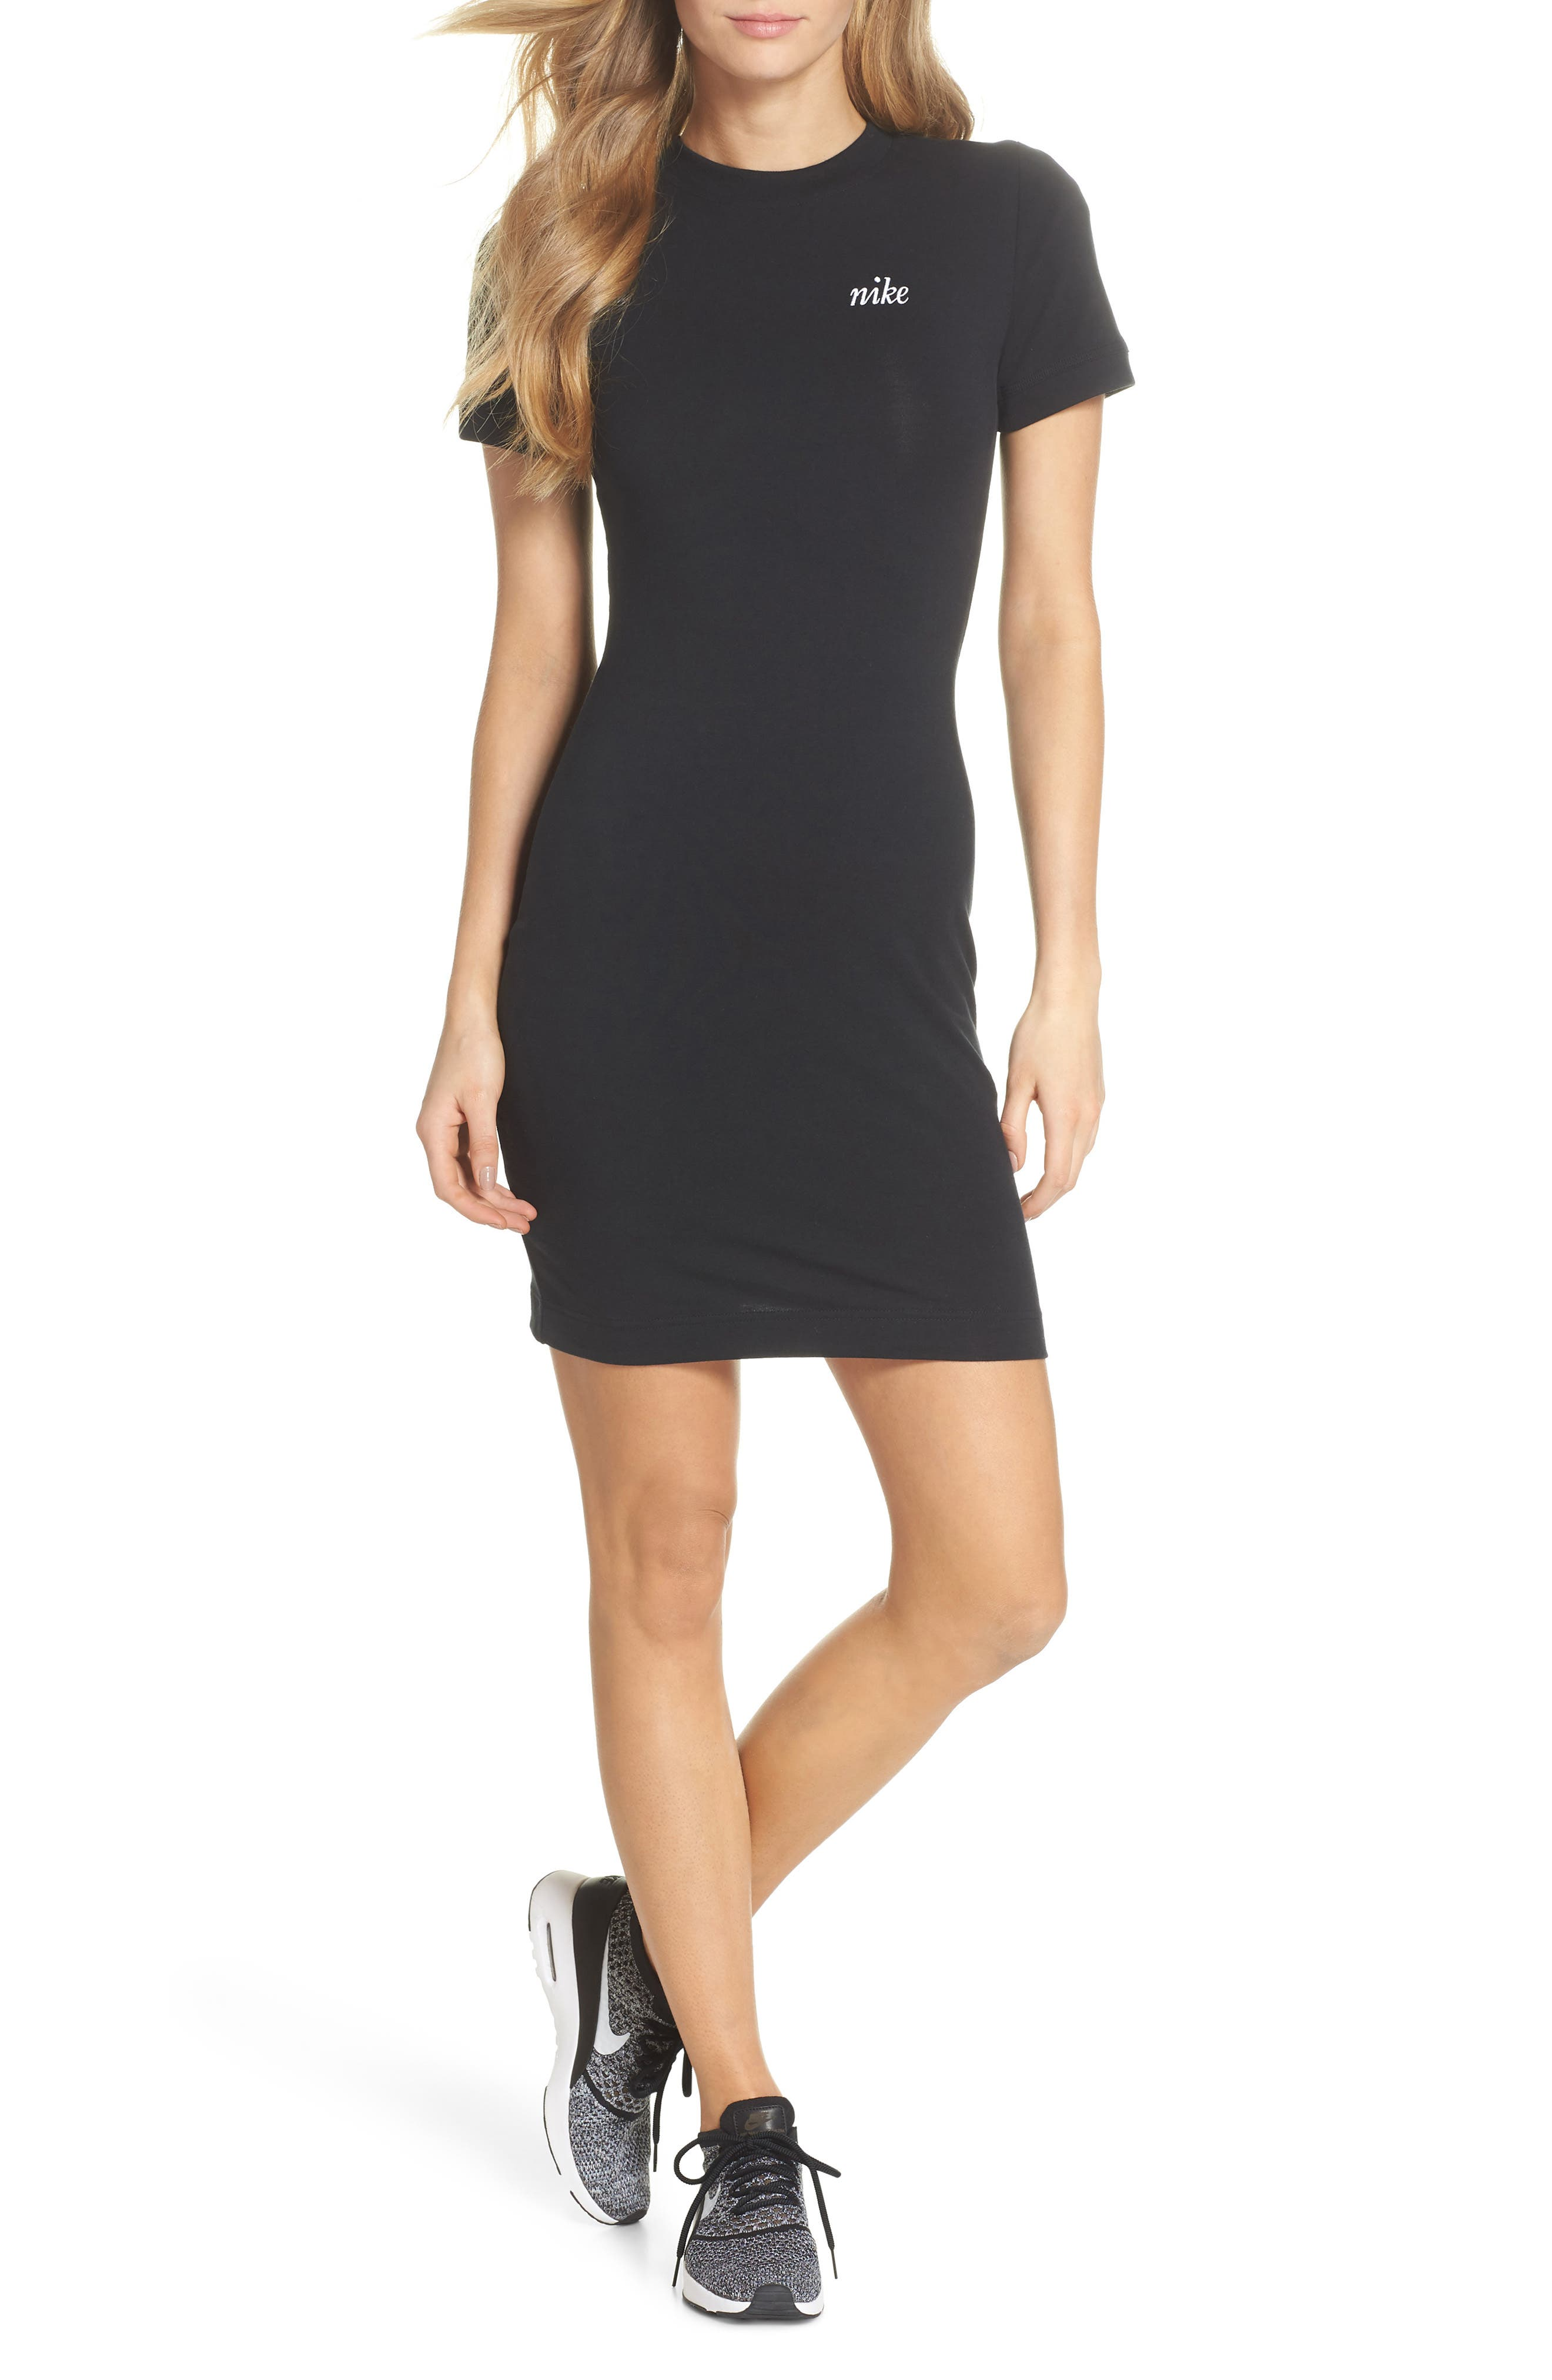 Sportswear T-Shirt Dress,                         Main,                         color, 010